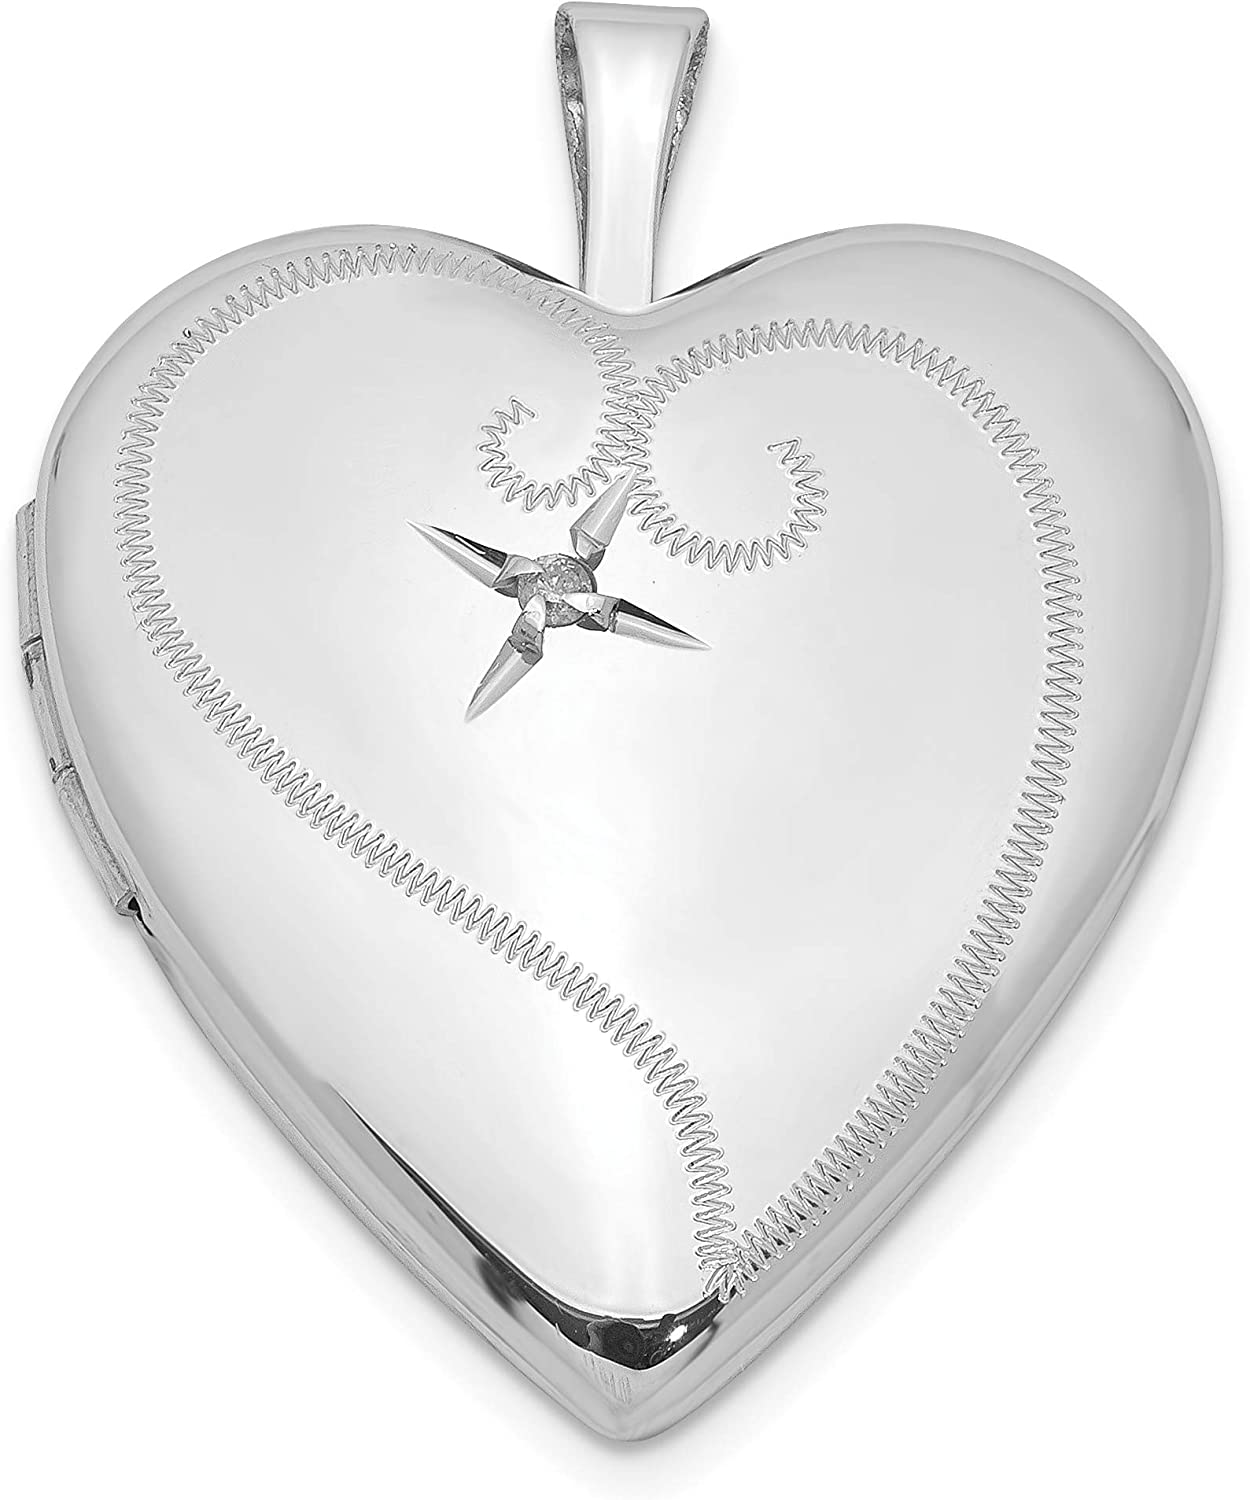 Sterling Silver Diamond Purchase 20mm Heart lowest price cttw 0.01 25x20mm Locket